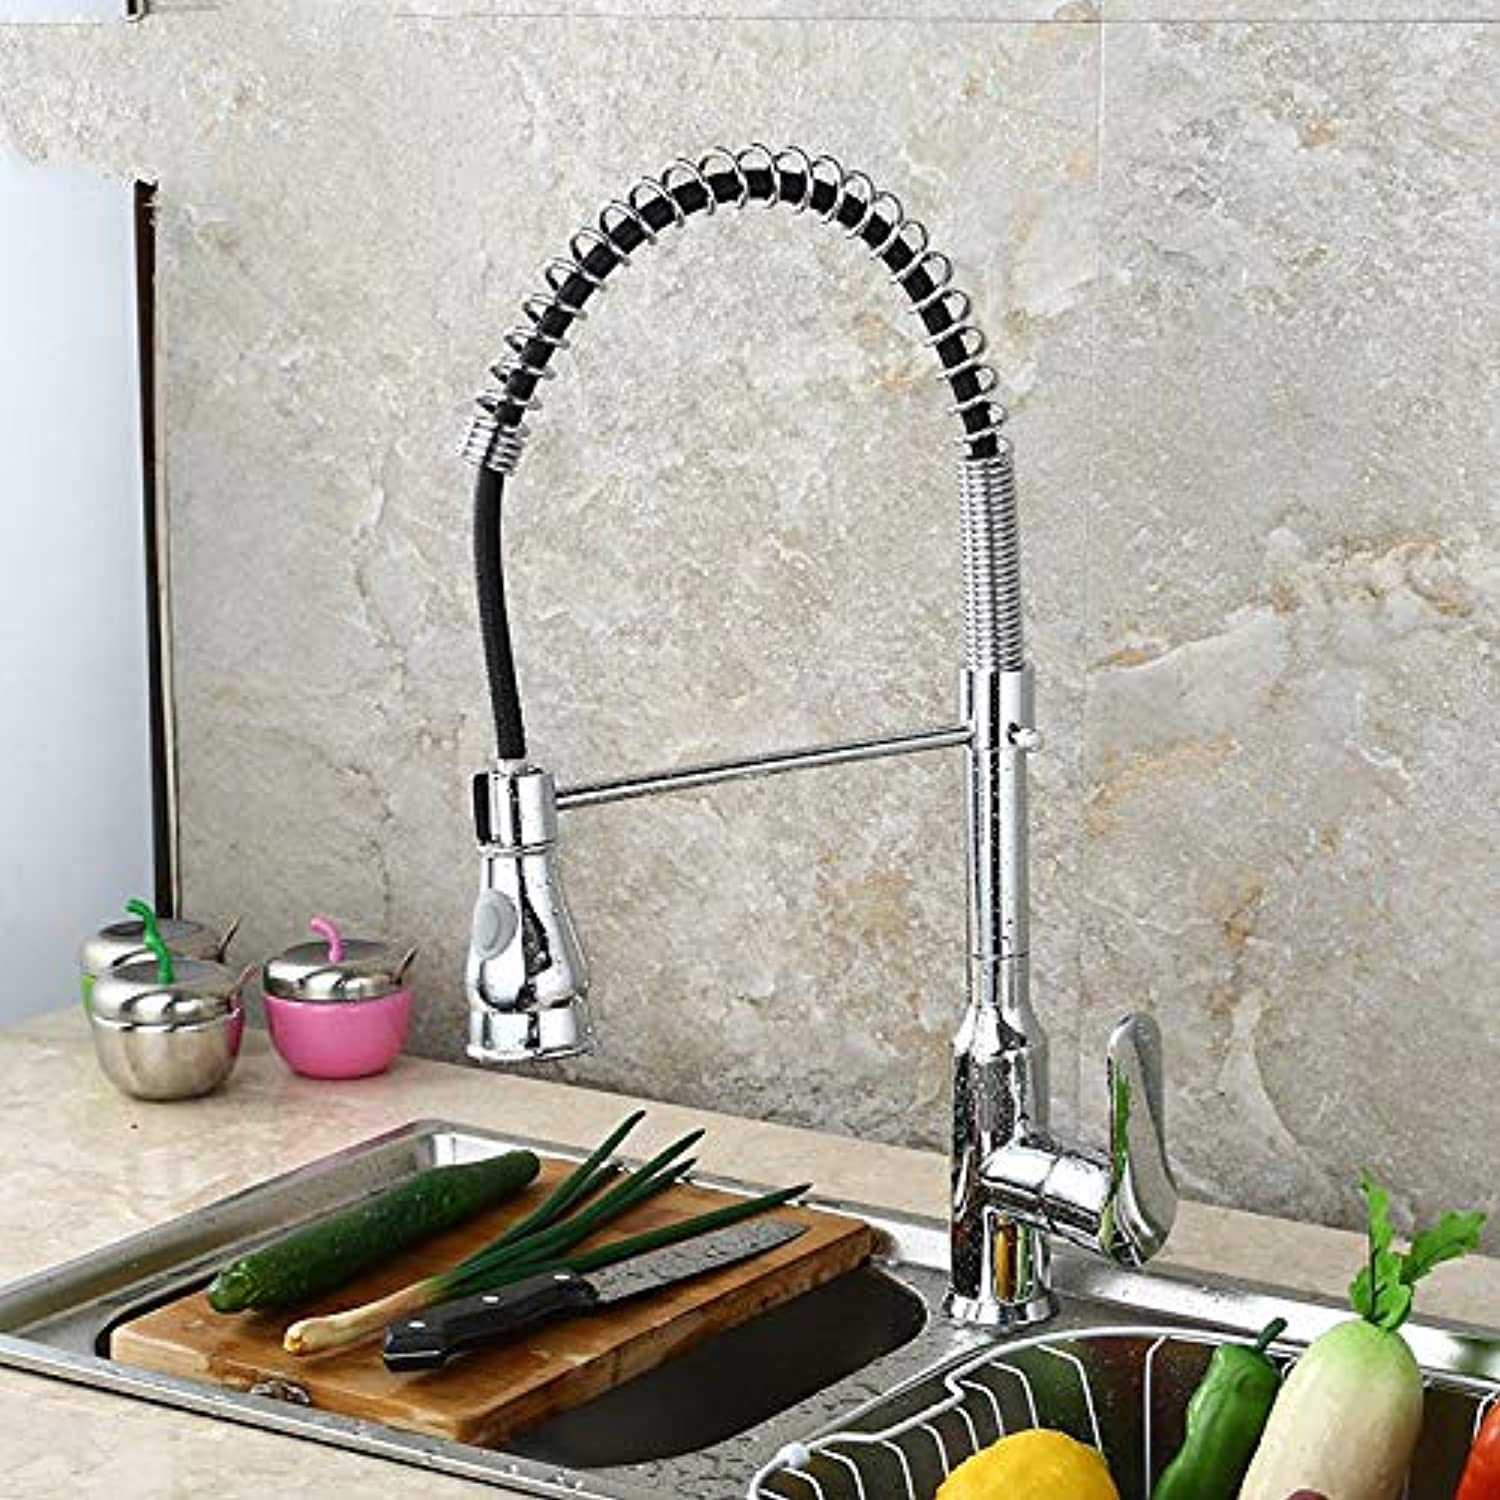 redOOY Taps Faucet Kitchen Sink Kitchen Faucet Sink Faucet Kitchen Mixing Faucet Multi-Function Sink